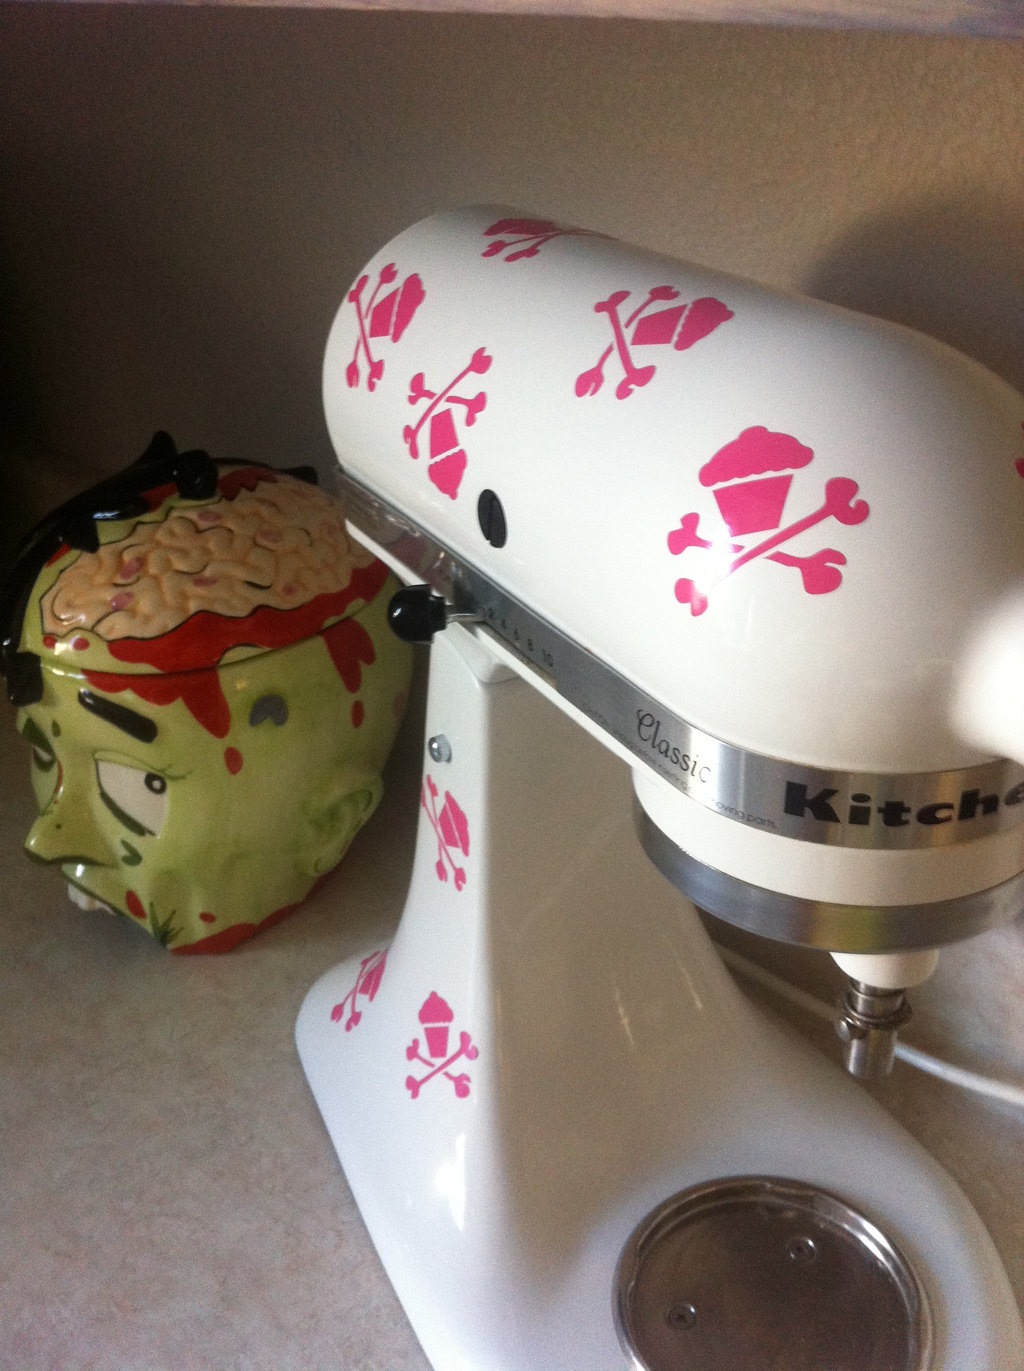 KitchenAid Mixer Art, 8 Skull Cupcake Decals